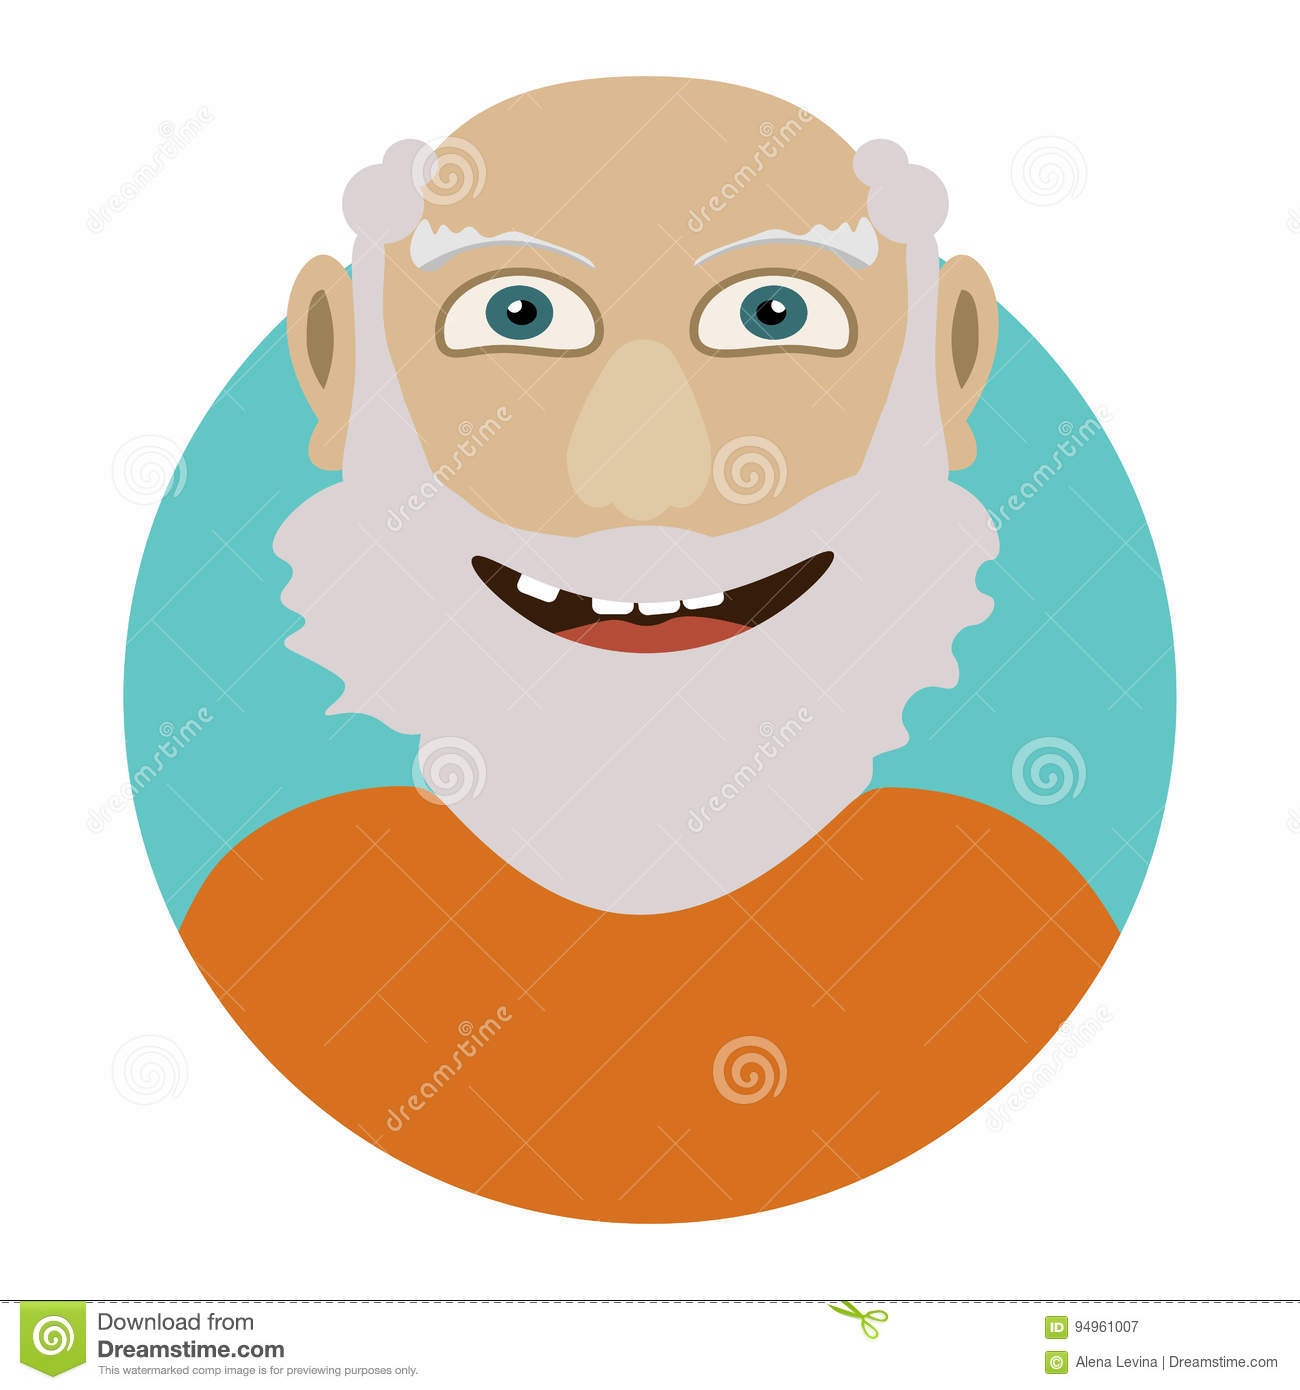 psychology aspect in the old man Psychology wiki 34,224 pages add new page topcontent most_visited collectivist and individualist cultures list of human resource management topics.